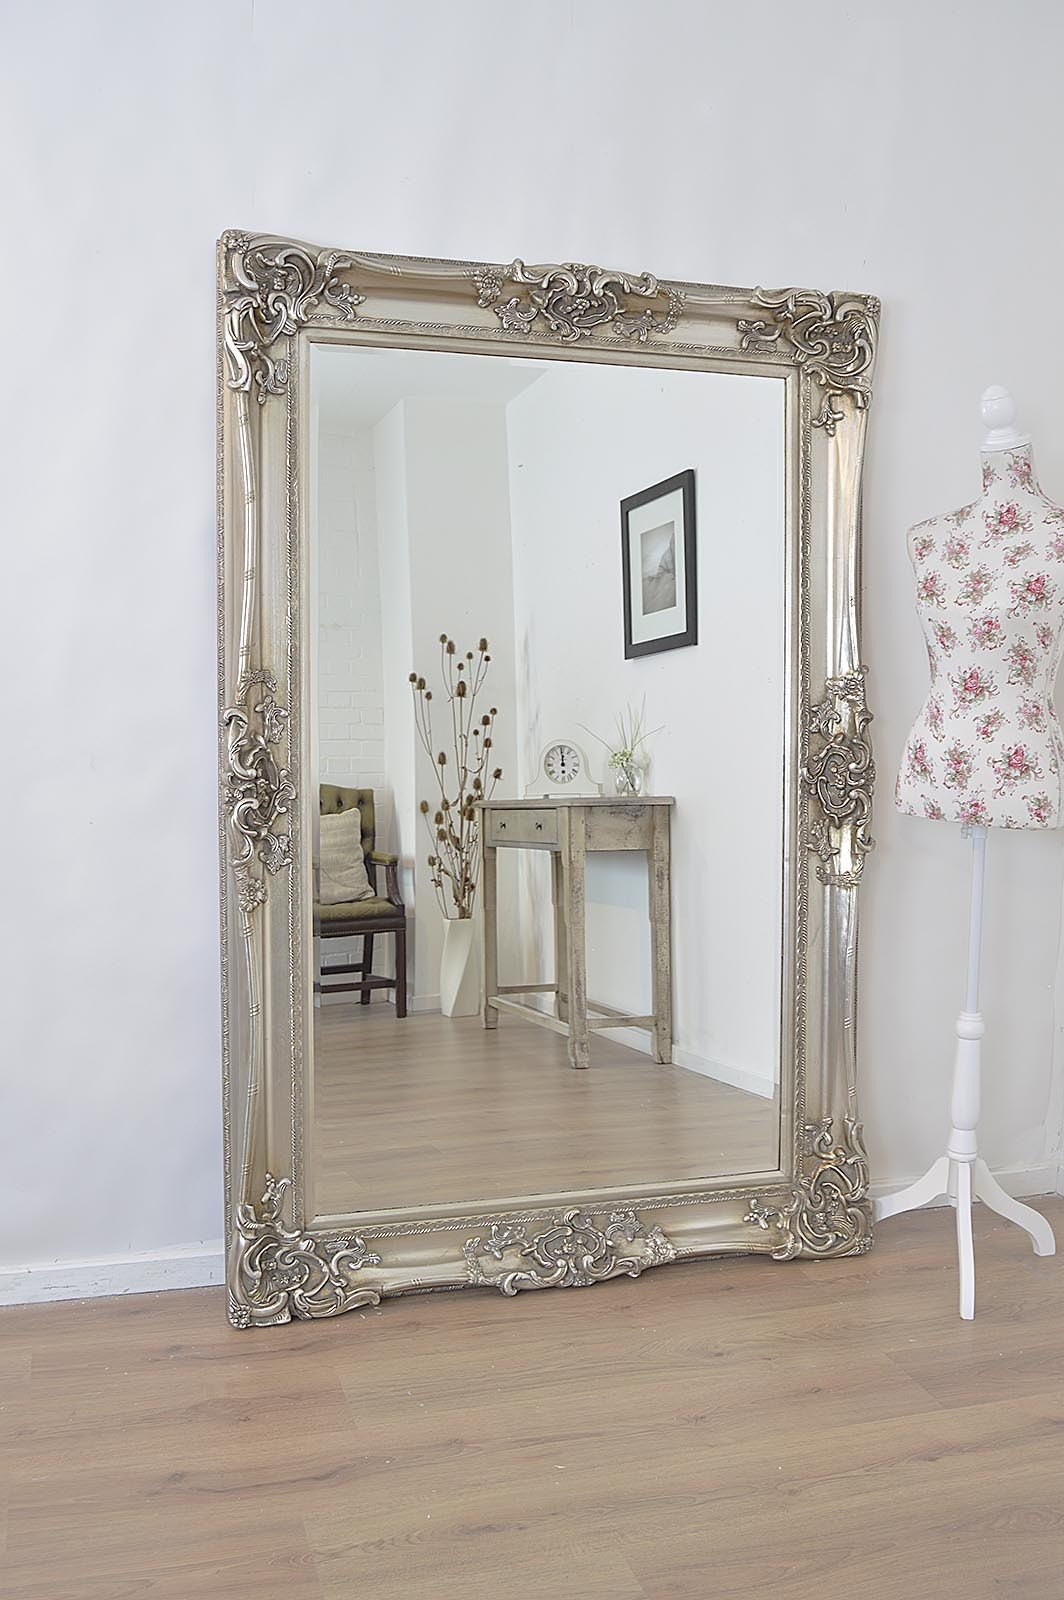 Classic Impression On Antique Wall Mirrors Vwho With Large Ornate Wall Mirror (Image 2 of 15)